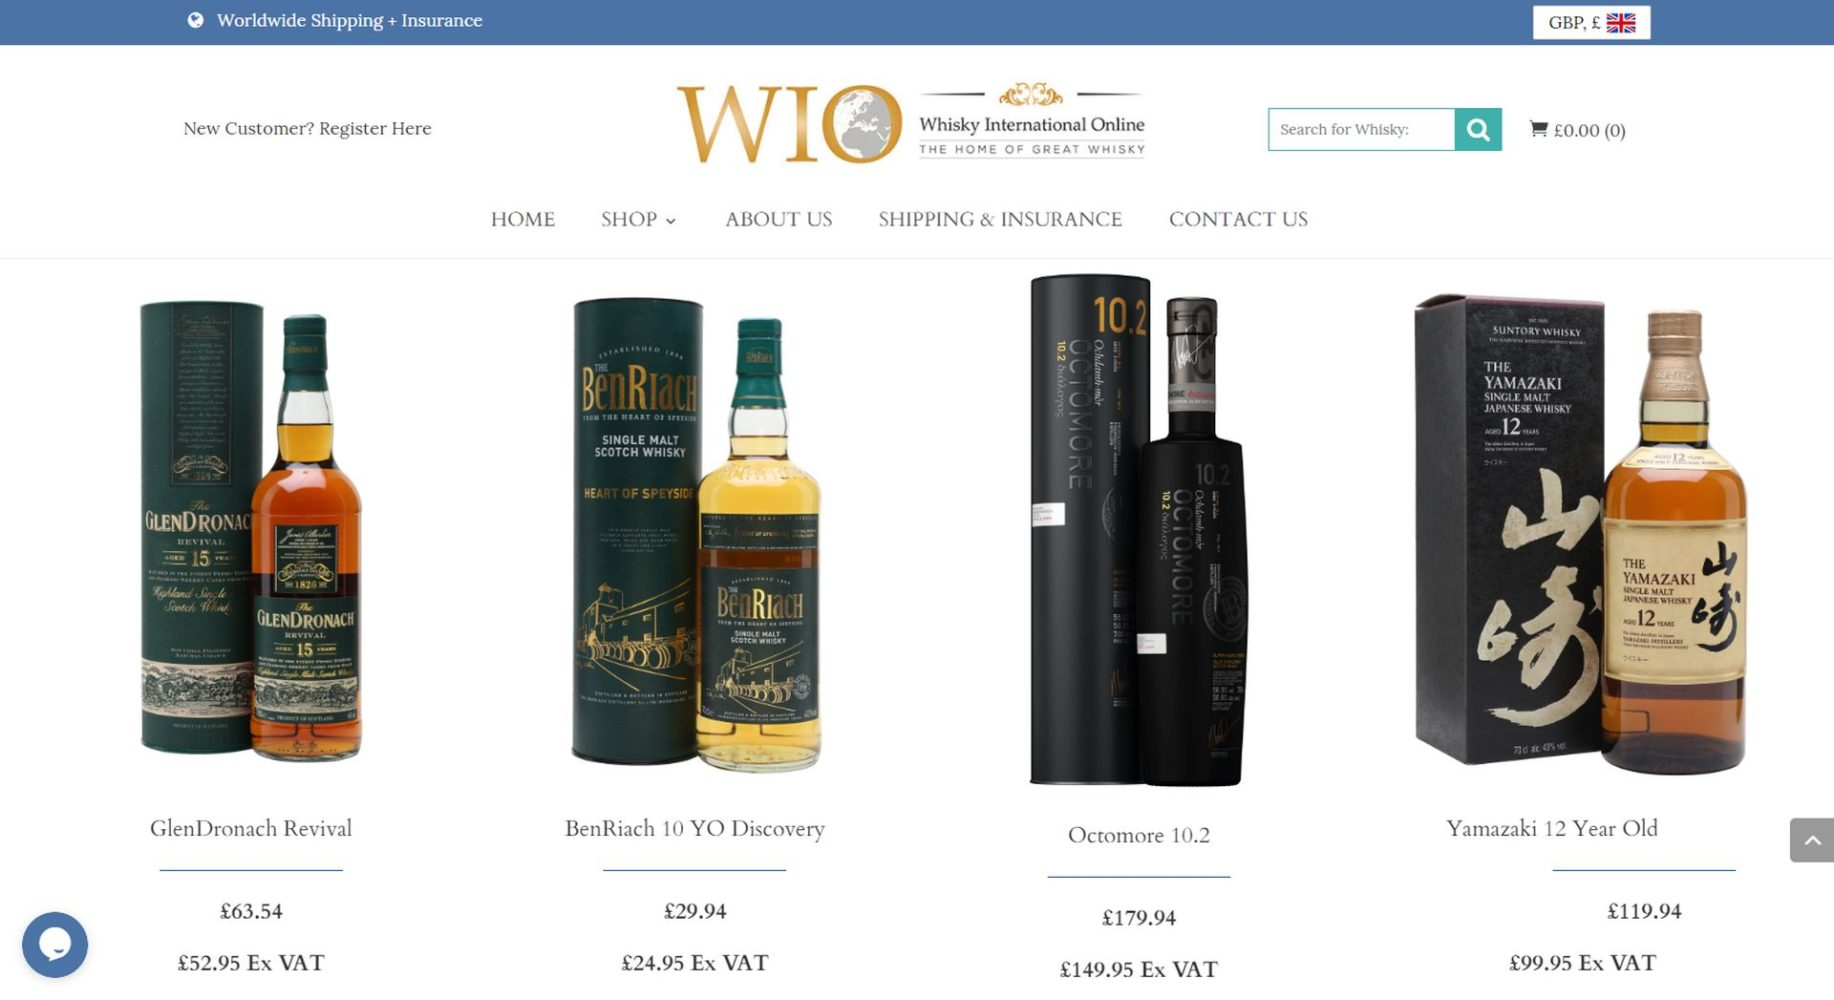 Whisky International Online Product